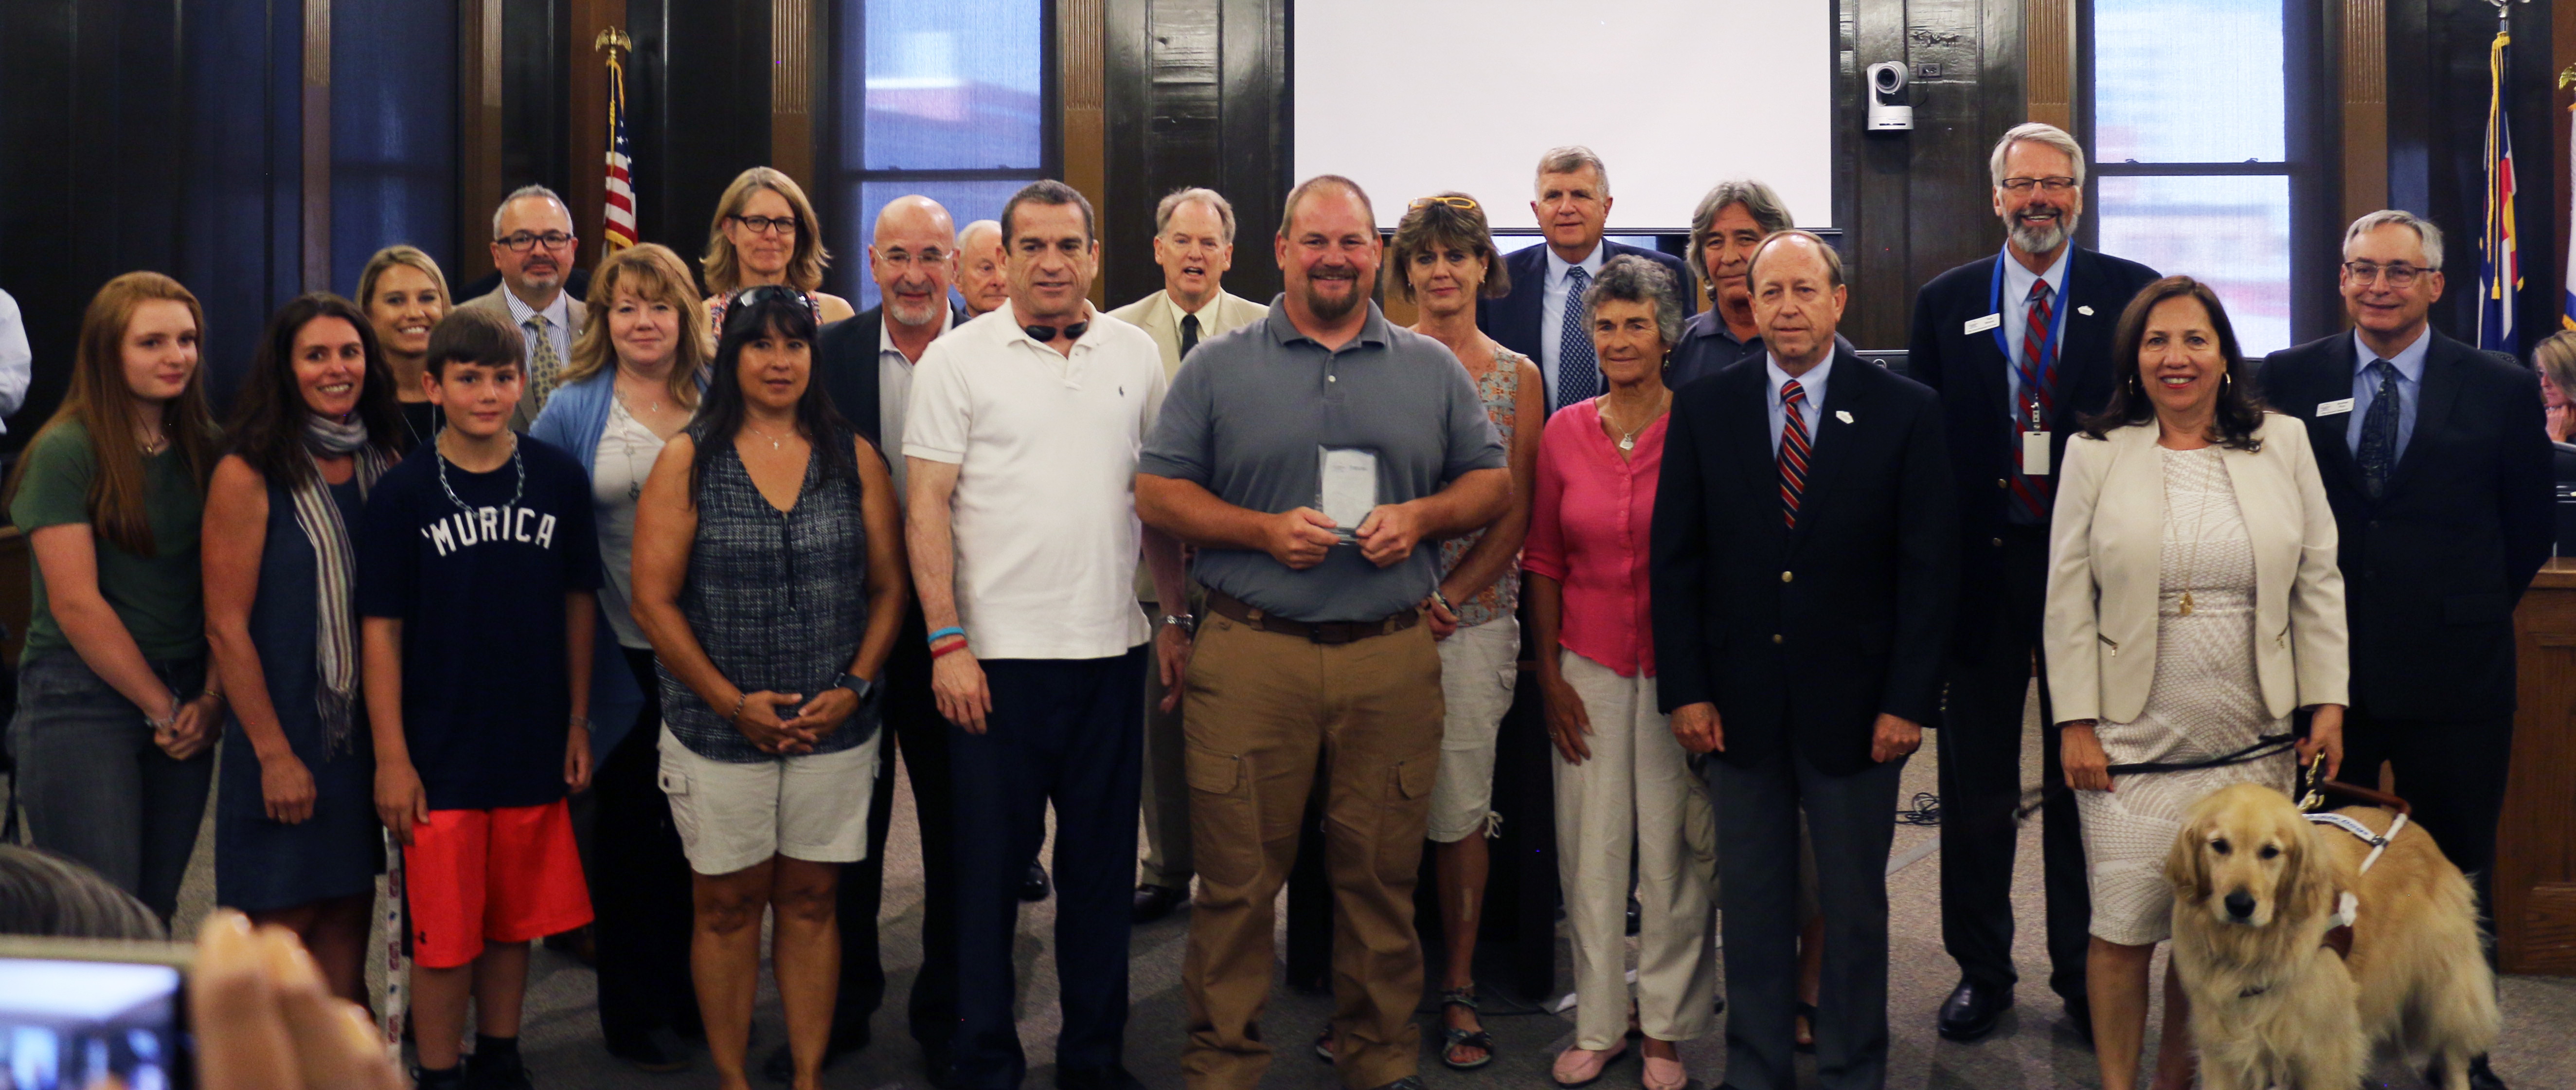 Cris Barnhart with award surrounded by mayor, city council and members of the community